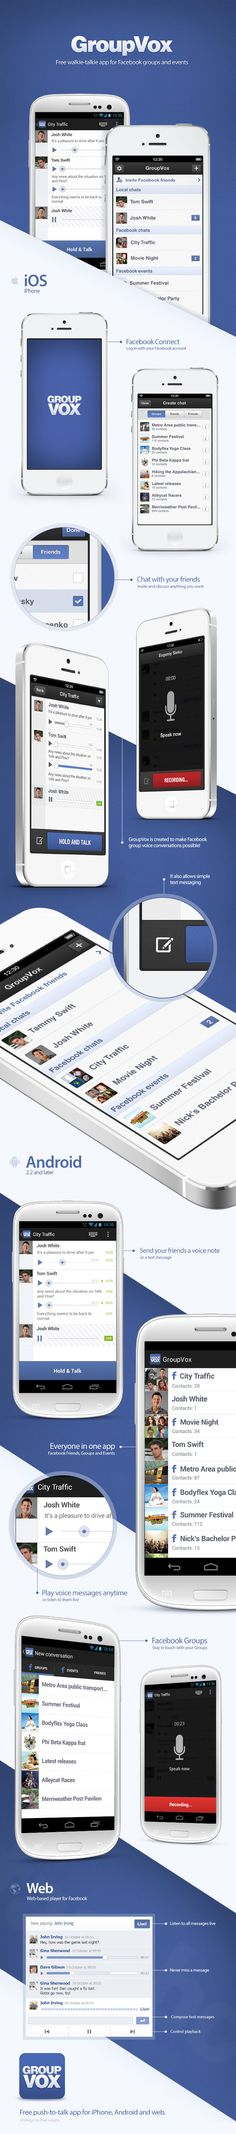 Free walkie‐talkie app for Facebook groups and events by Pixel Junglist via Behance